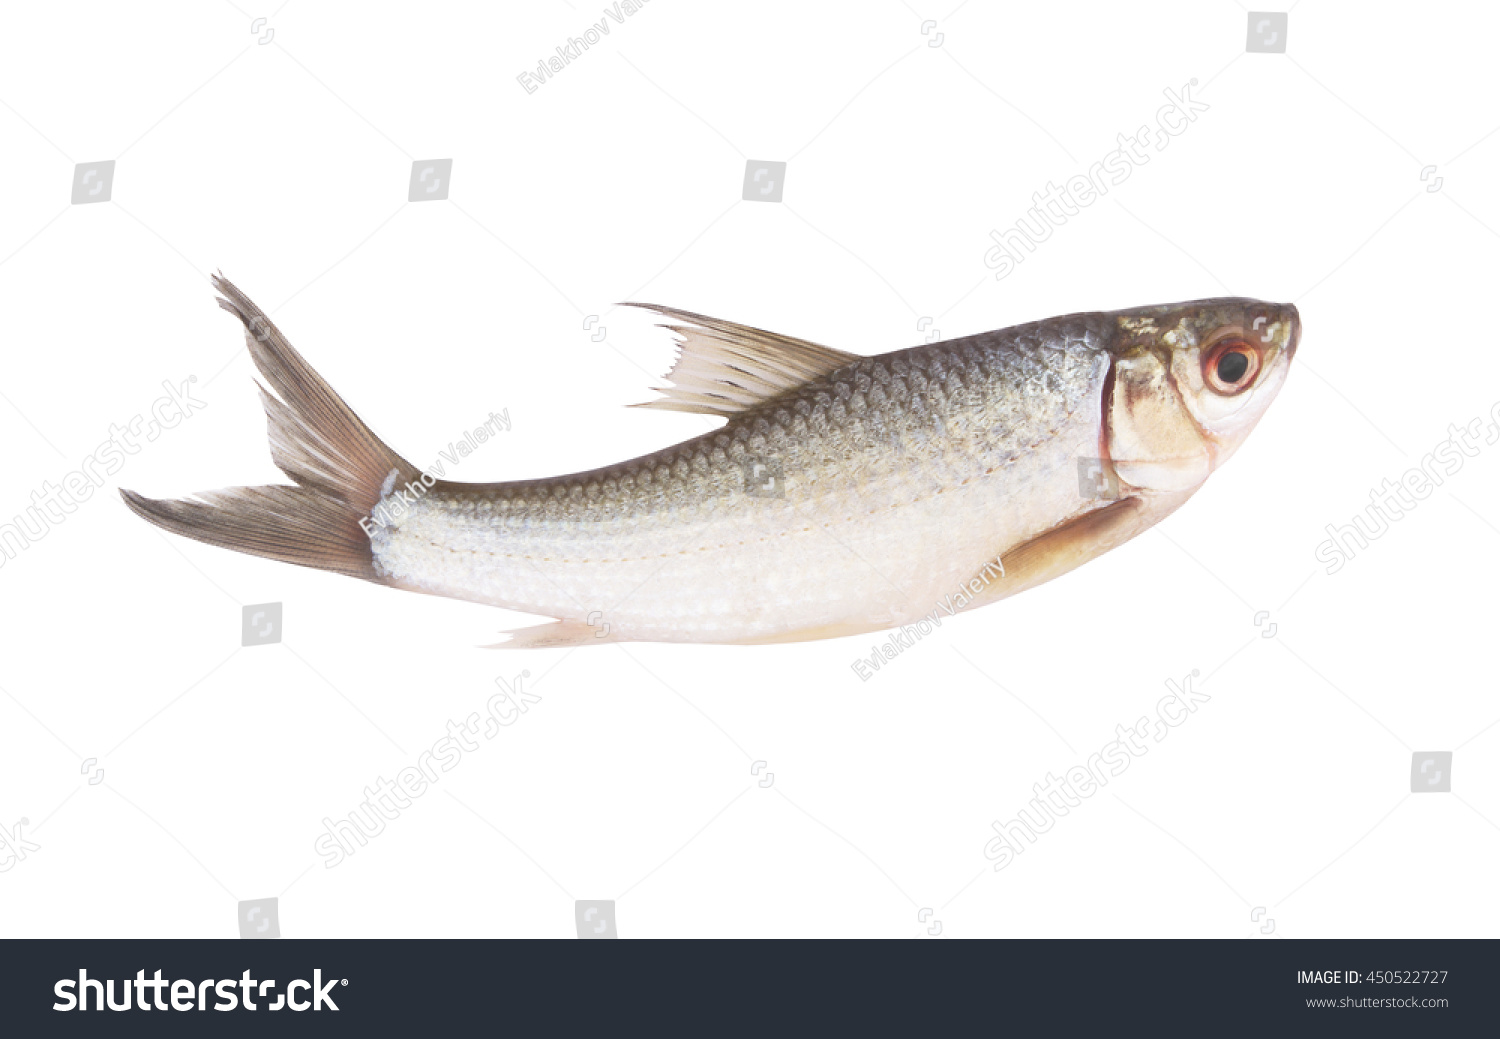 Raw fish isolated on white background stock photo for Pictures of white fish